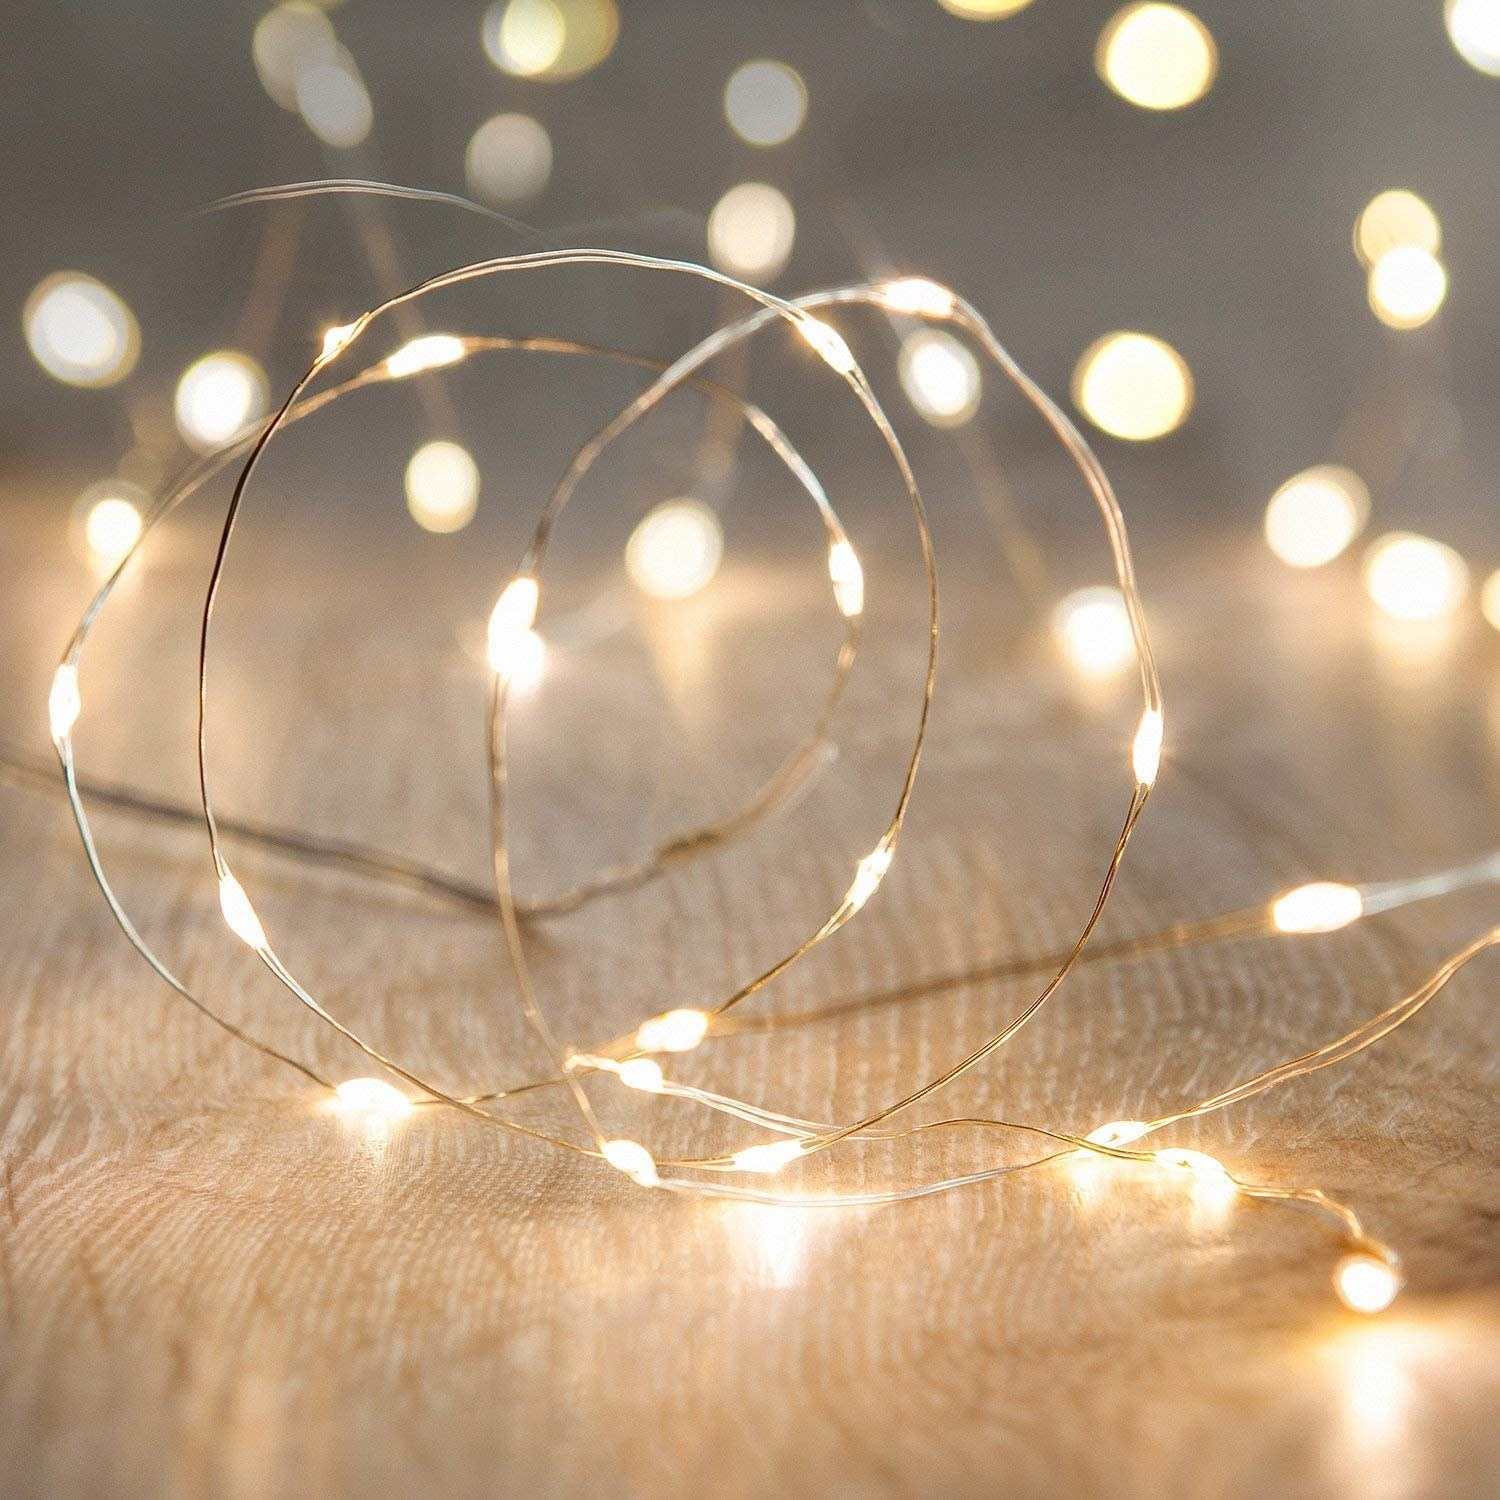 The warm white string lights